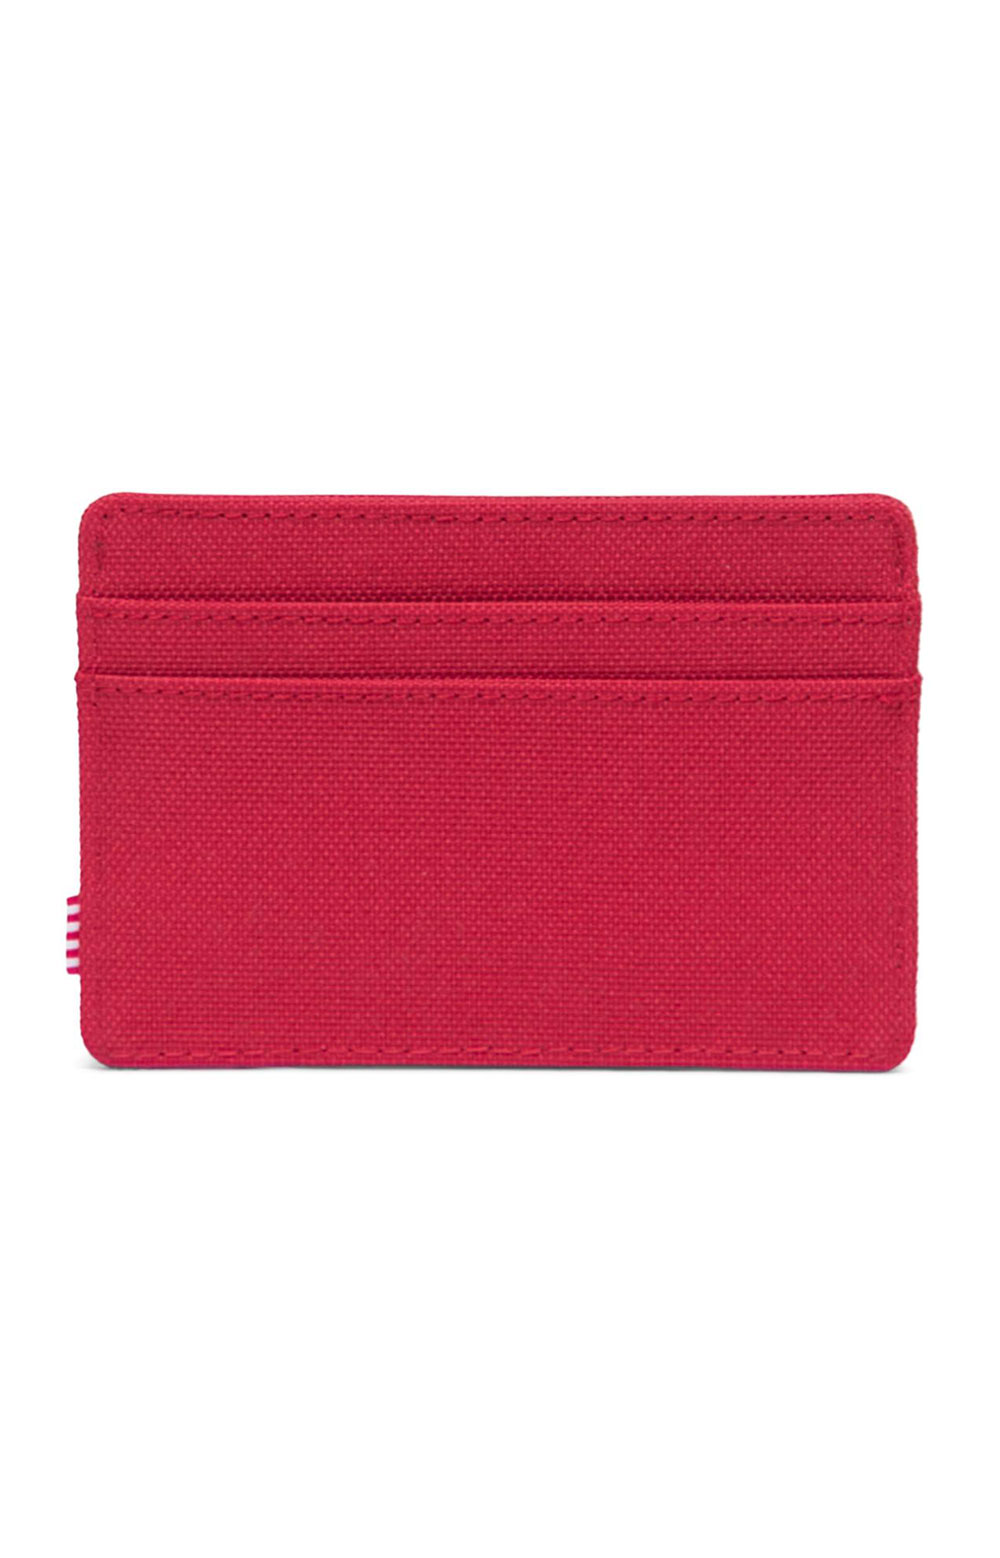 Charlie Wallet - Red 3